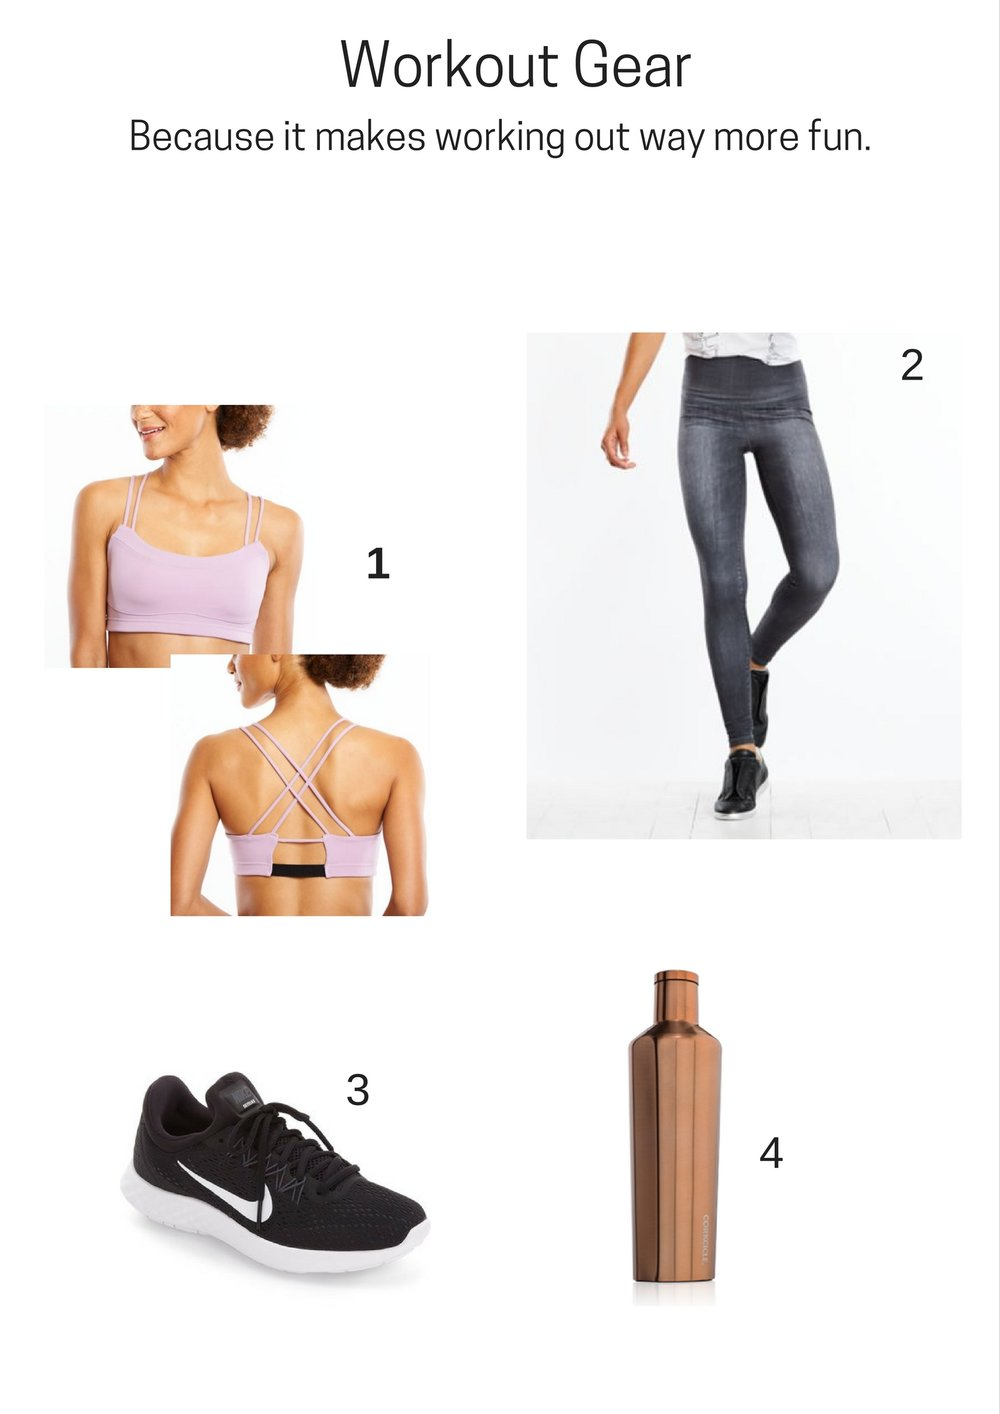 1 – Om Bra from Lucy ; 2 – Lucy Indigo High Rise Yoga Legging ; 3 – Nike Lunar Skyelux Running Shoe ; 4 - Corkcicle 25oz Canteen in Brushed Copper